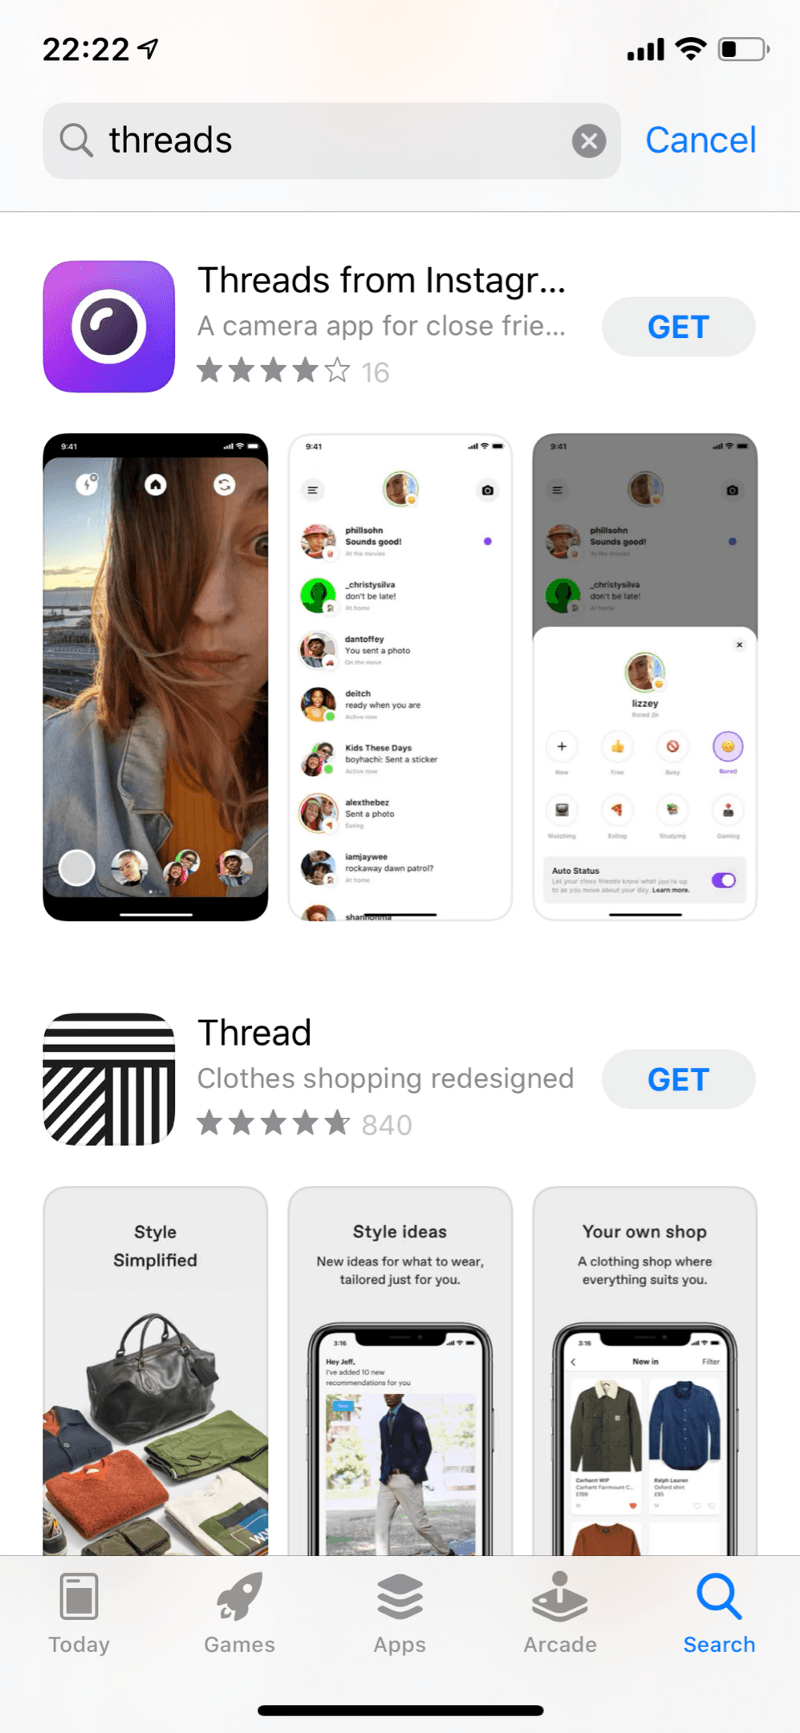 Download the threads app for Instagram